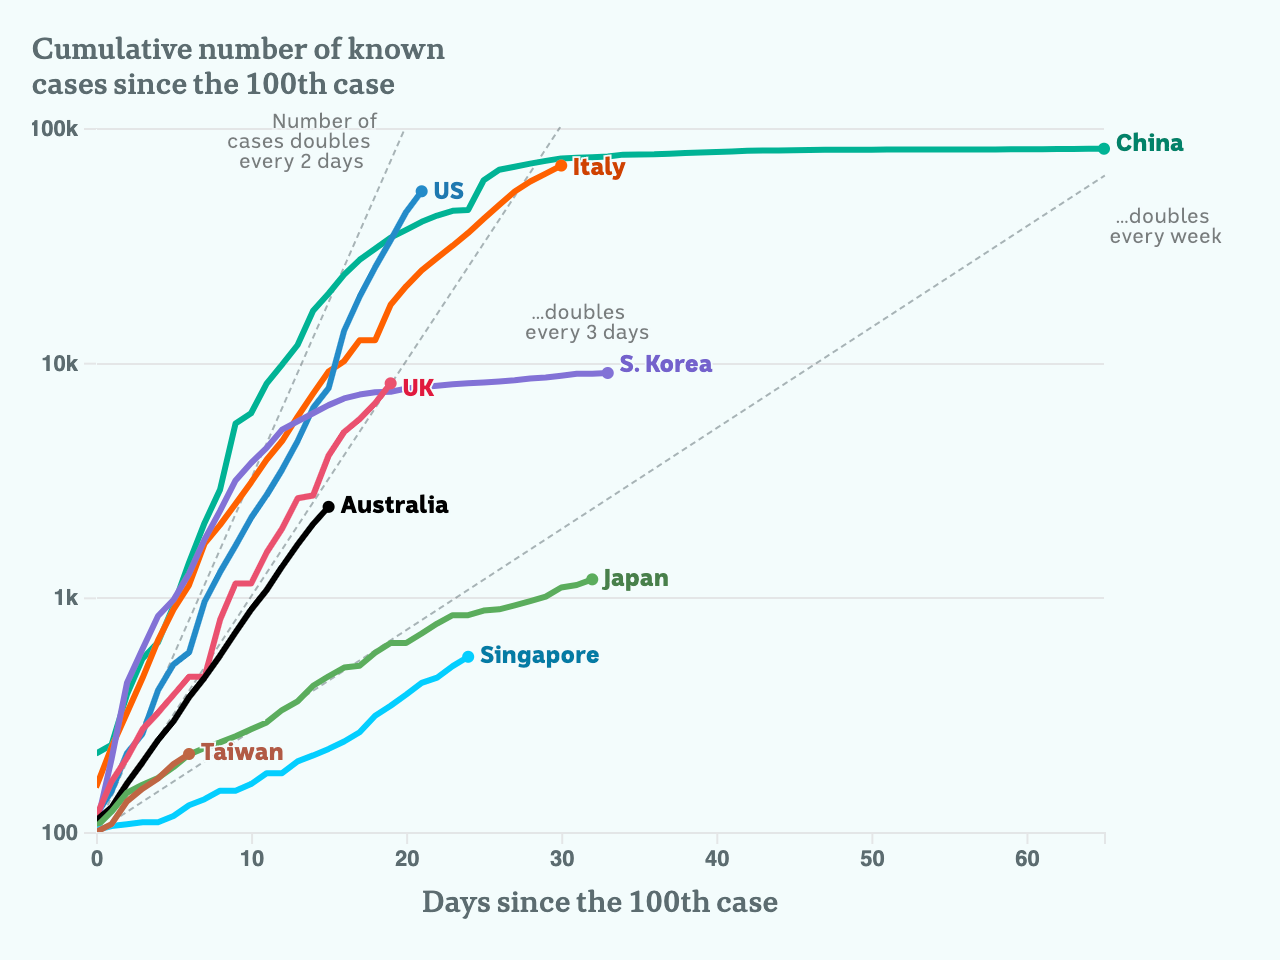 Charted growth in key countries, including the doubling trend lines.